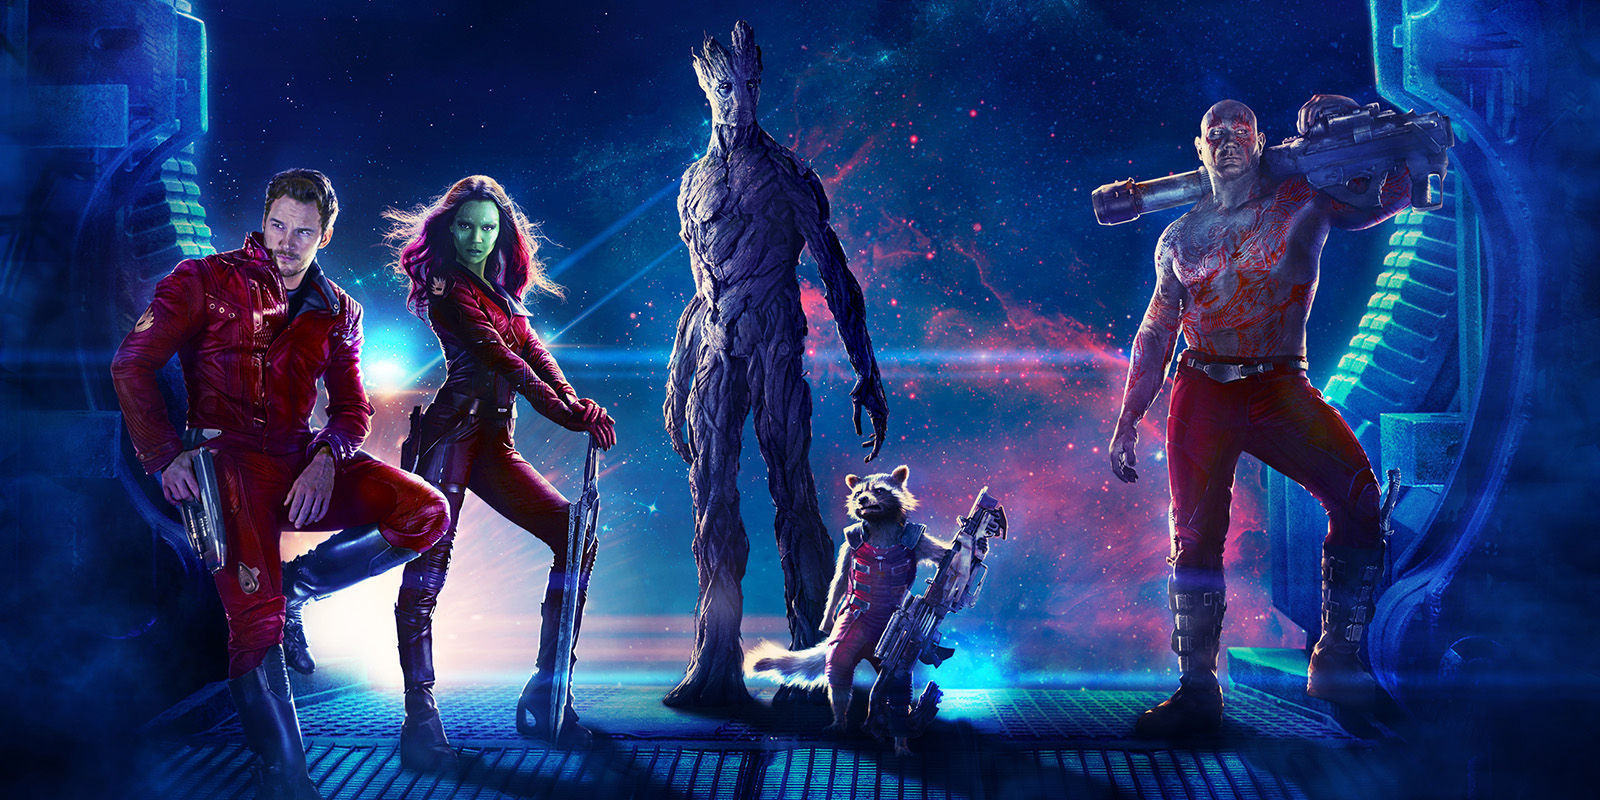 Expect guardians of the galaxy 2 teaser at comic con